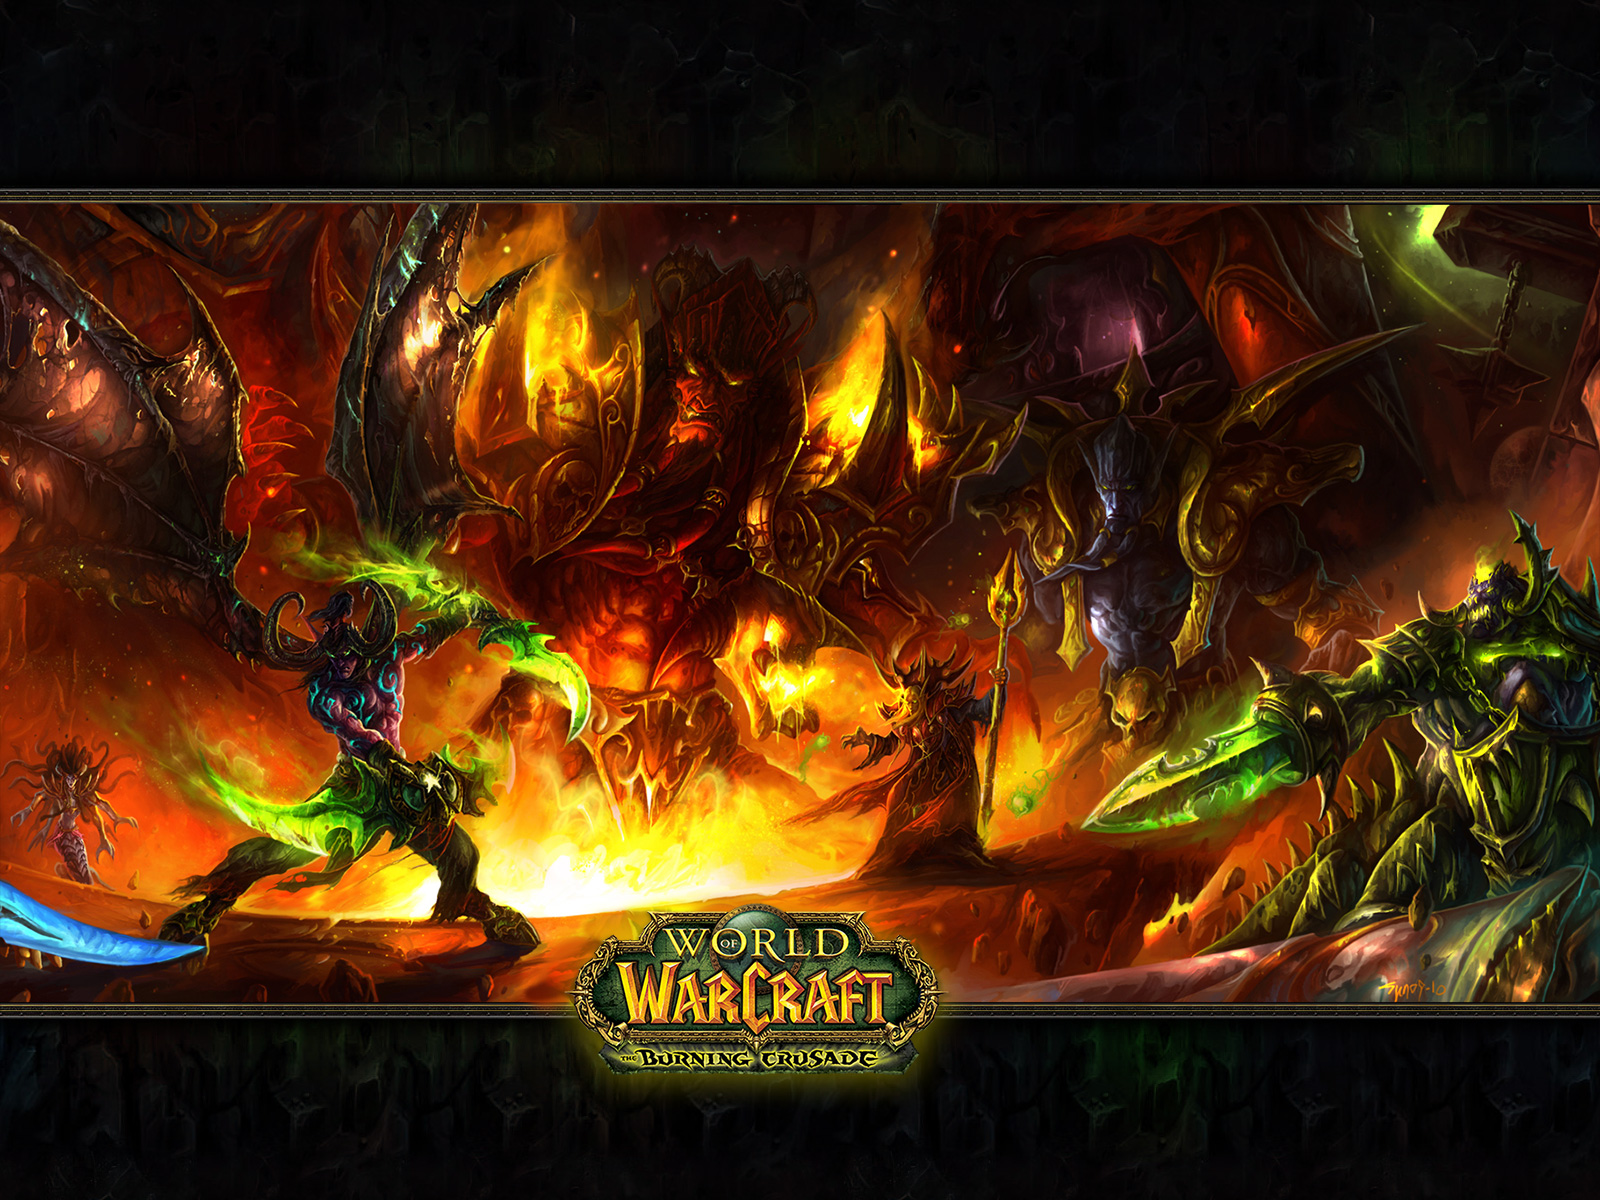 Awesomeworldofwarcraftbackgrounds 1600x1200